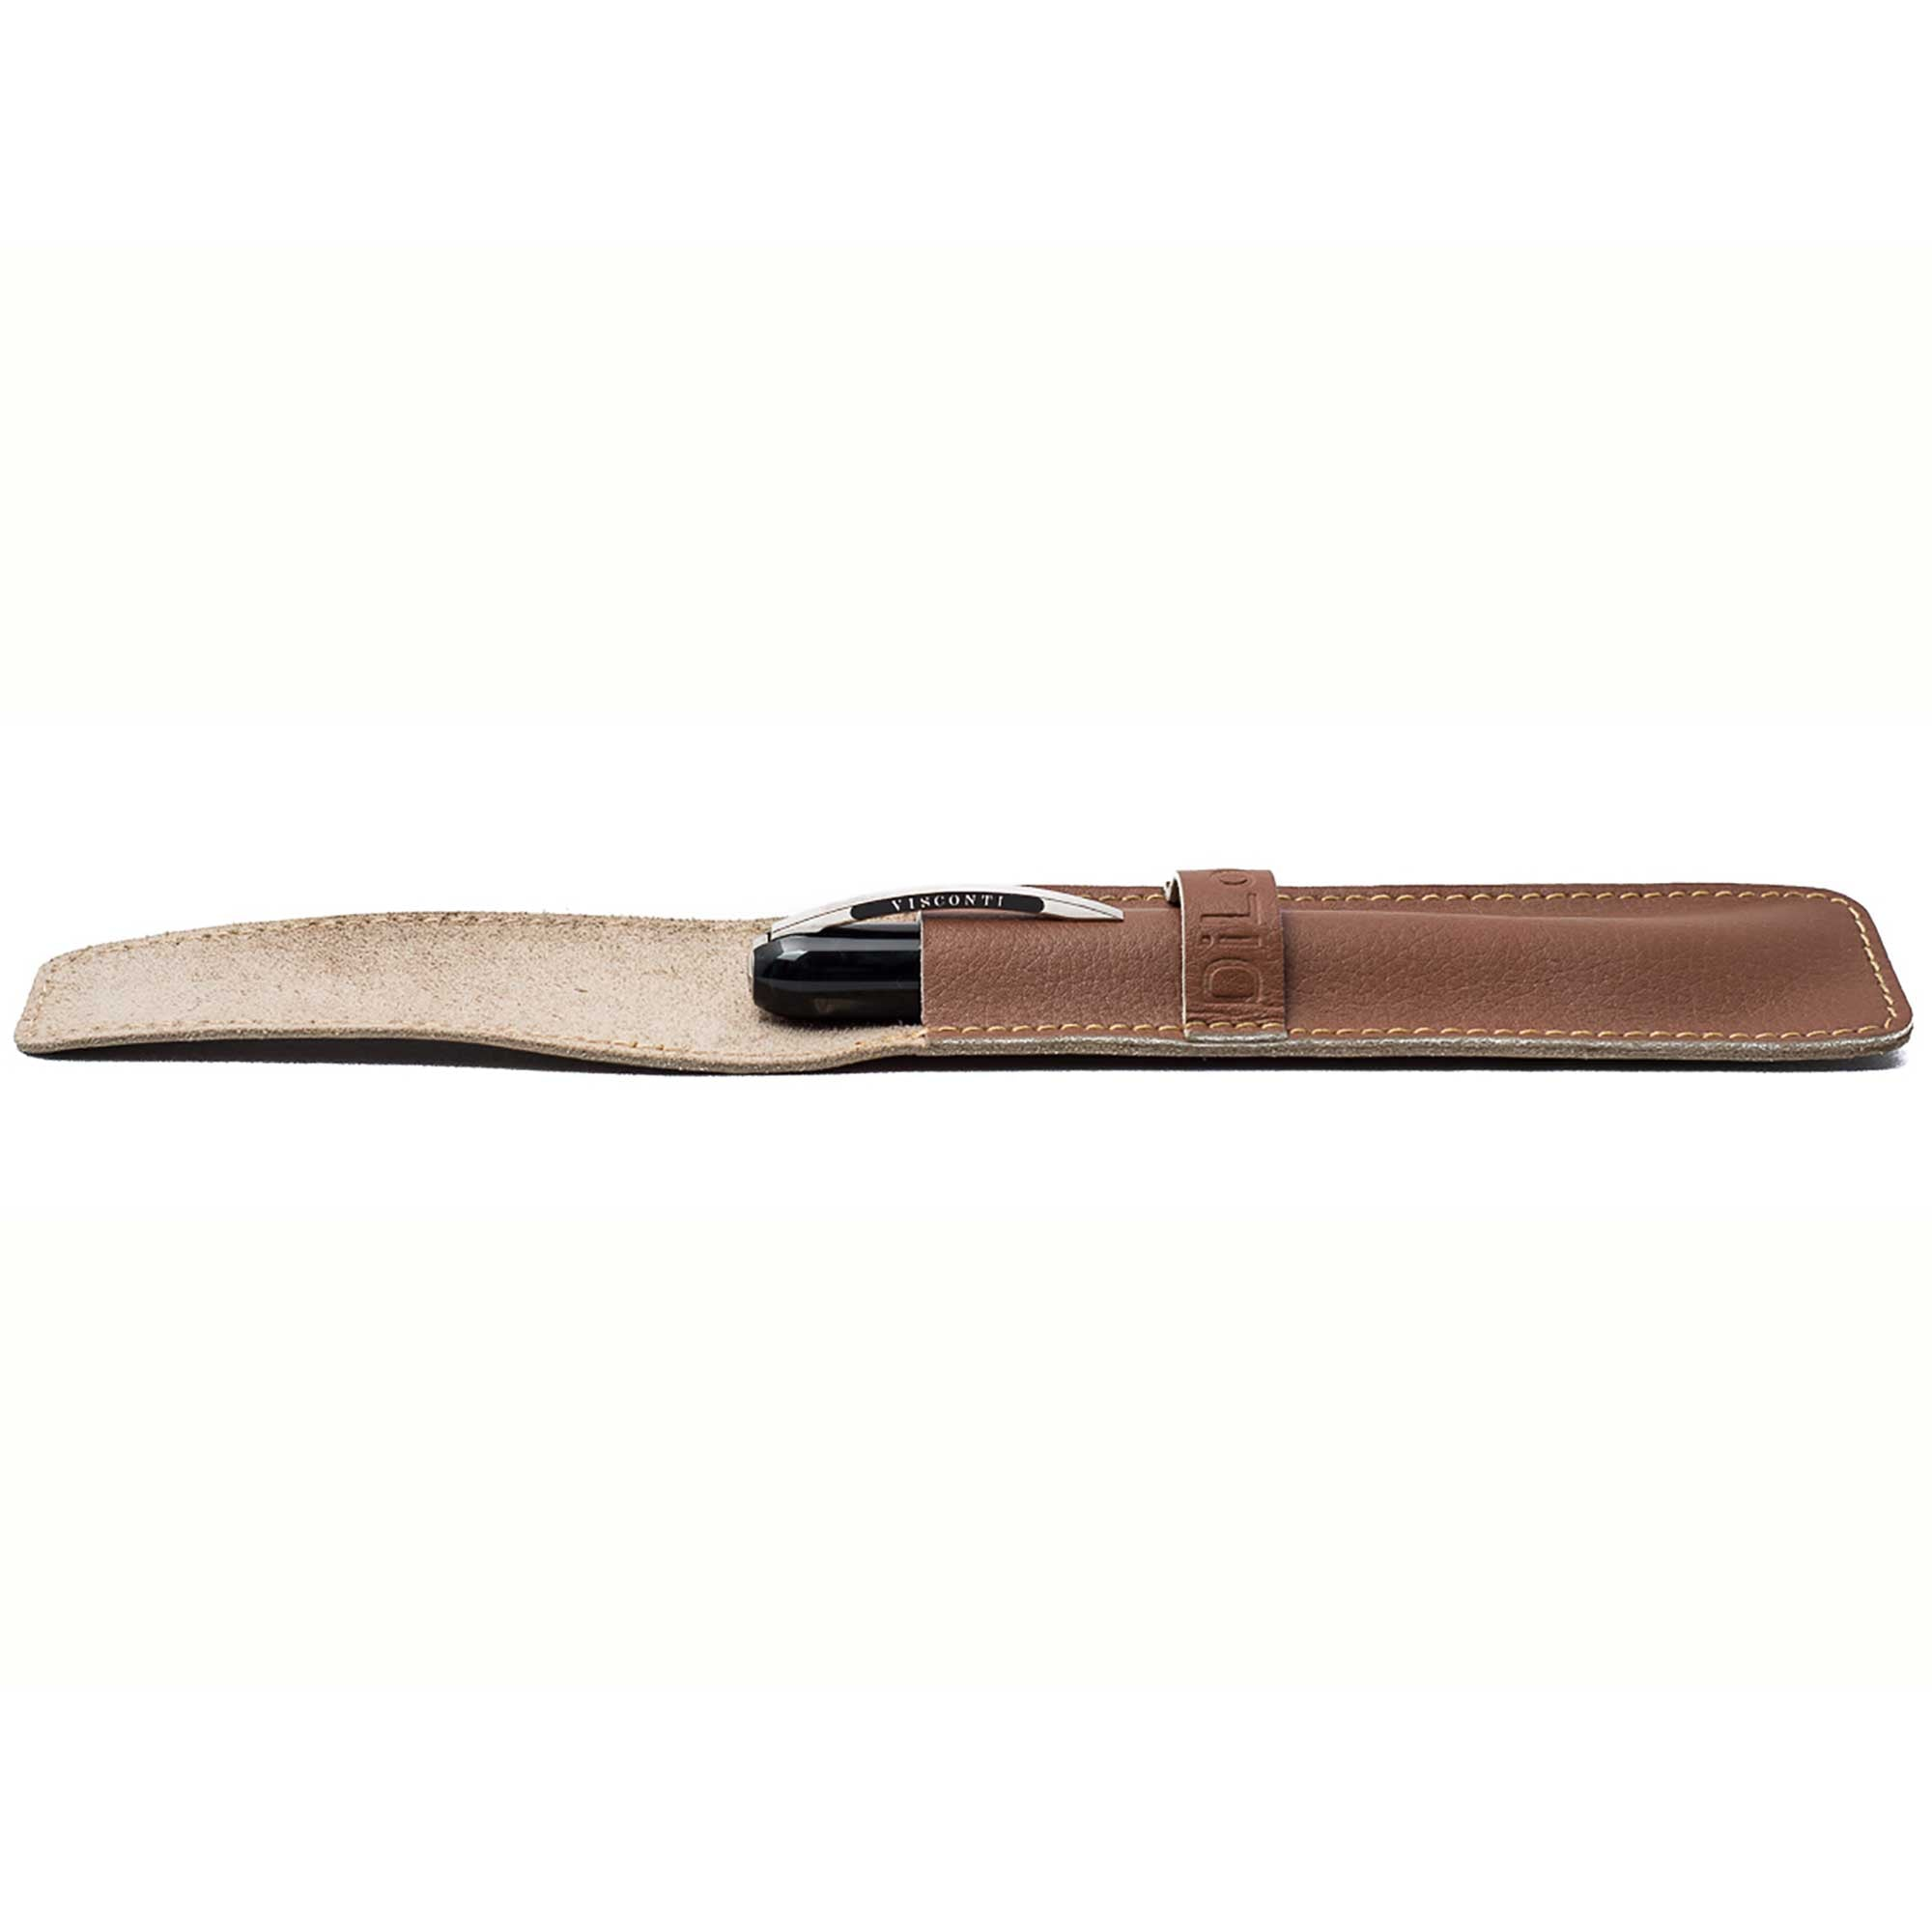 DiLoro Single Leather Pen Holder in Sepia Tan Full Grain Leather (pen not included)